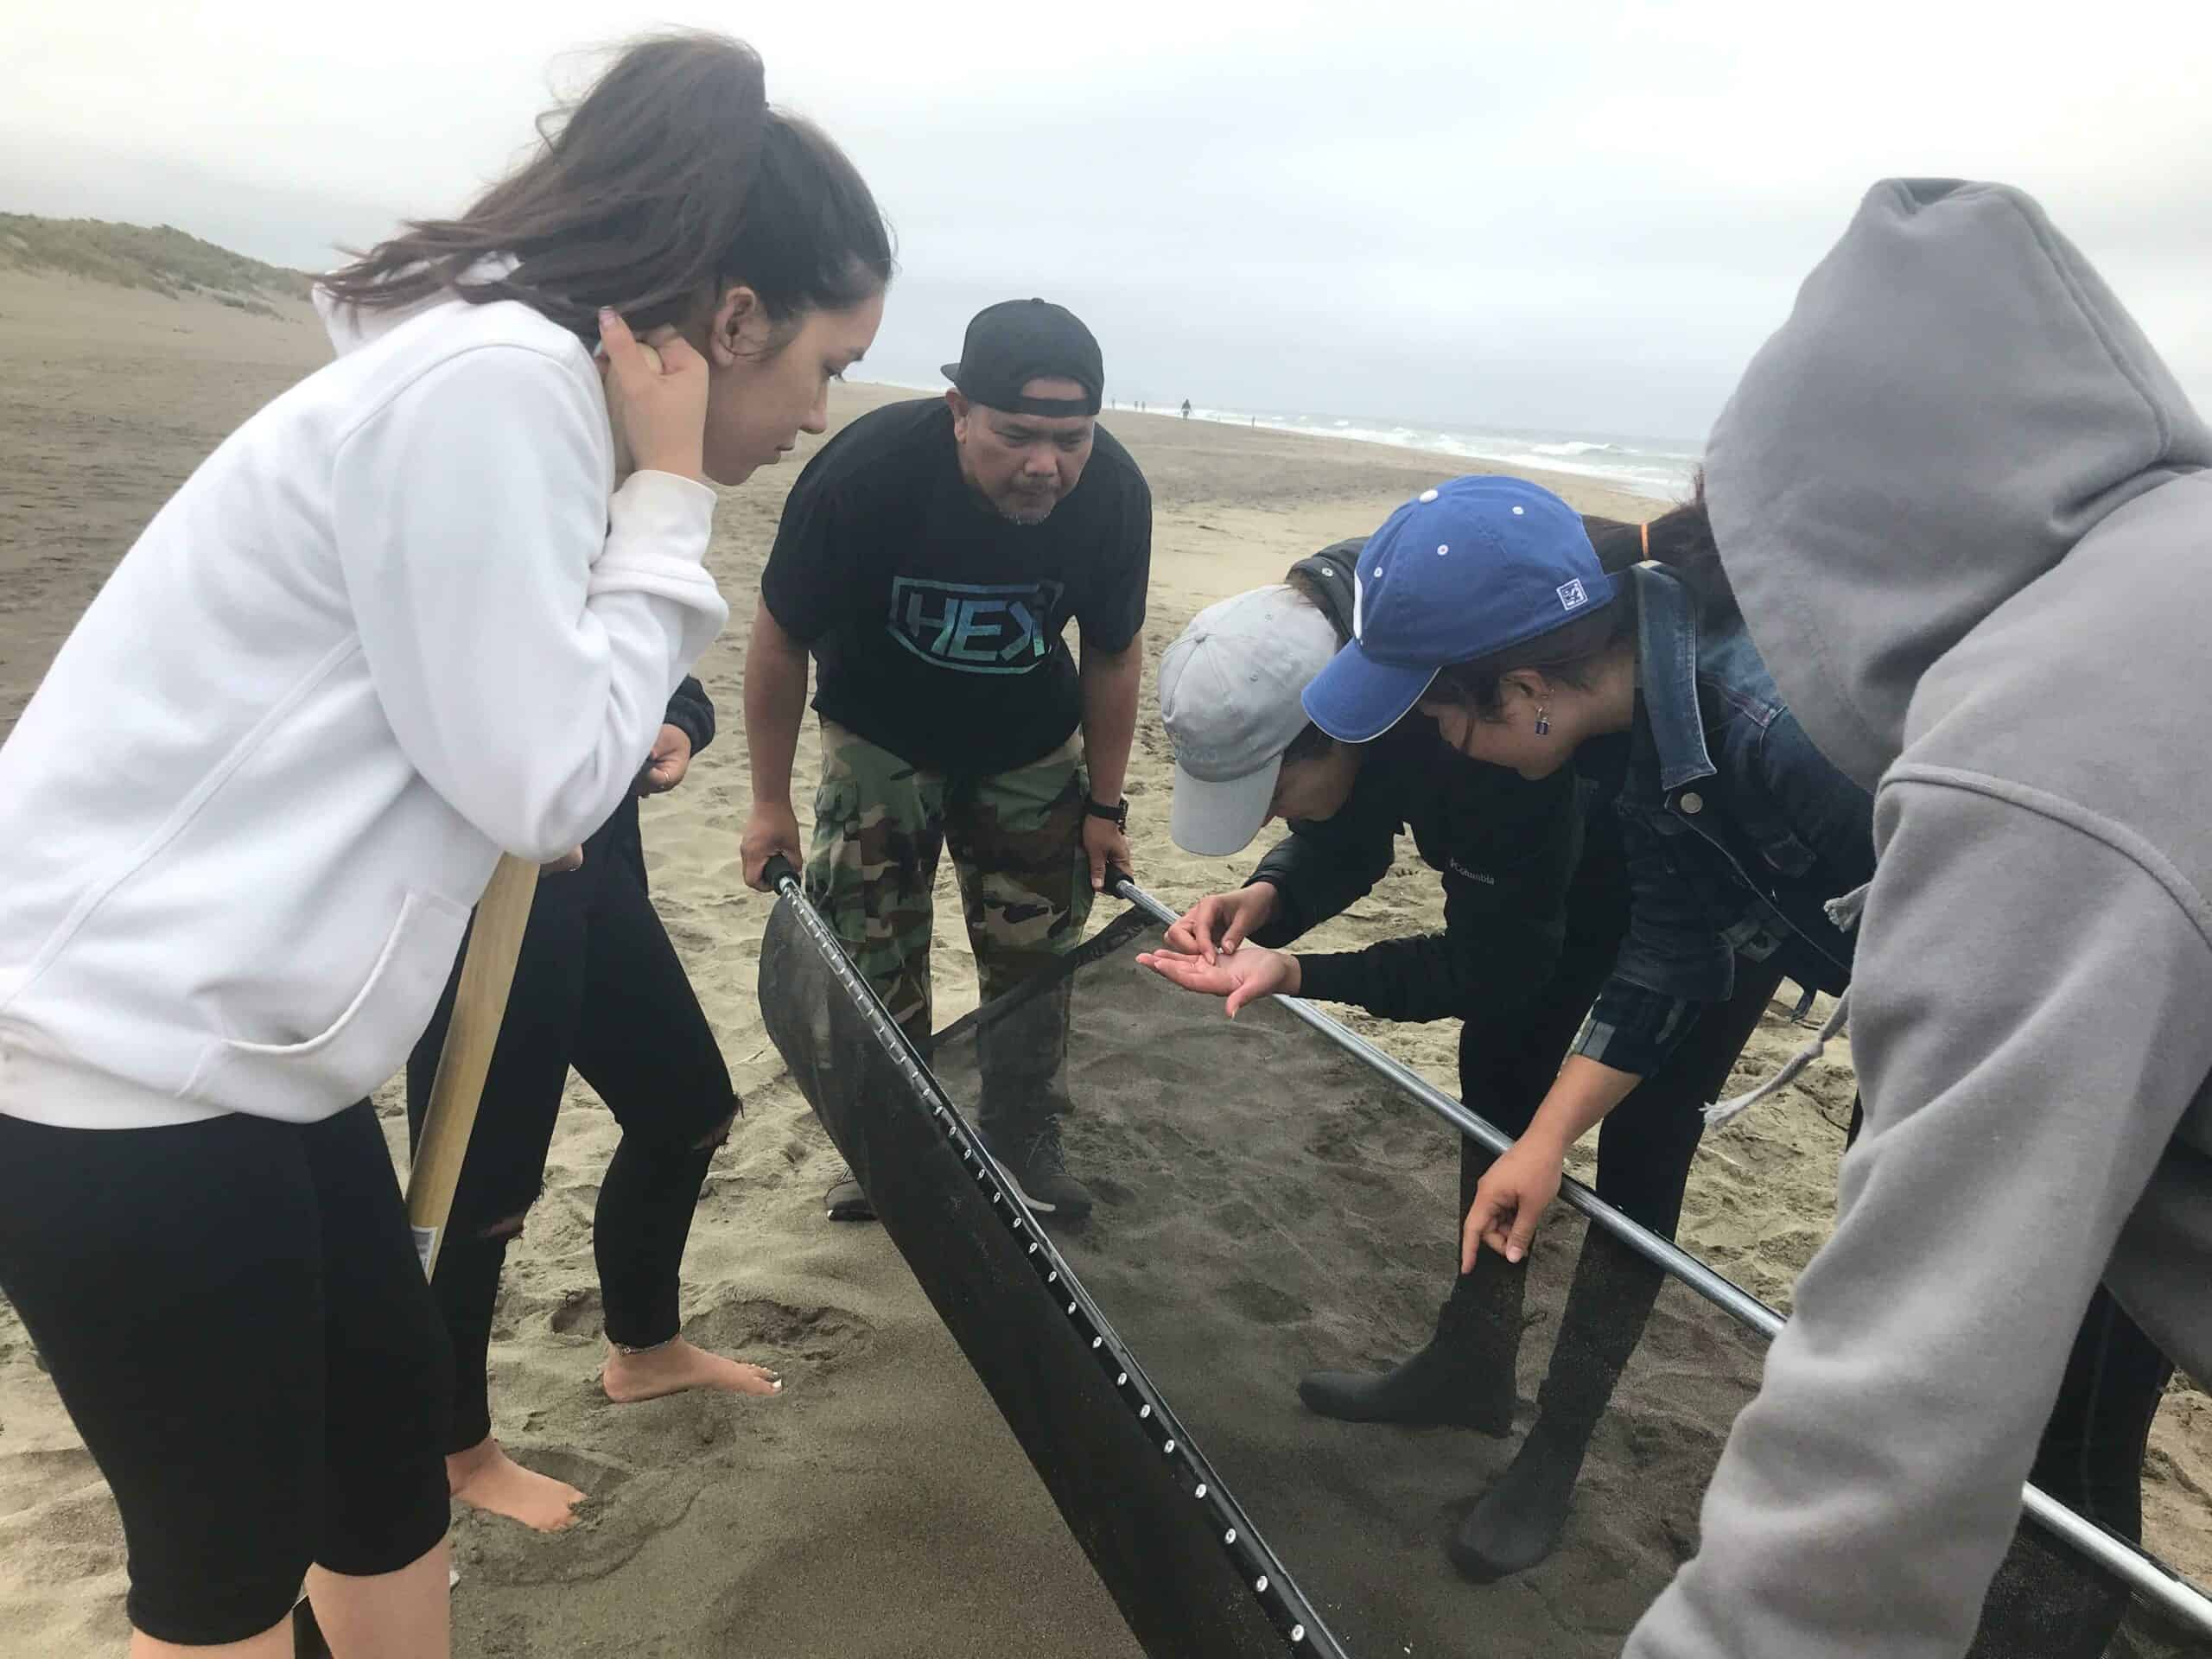 sifting for microplastics on the beach